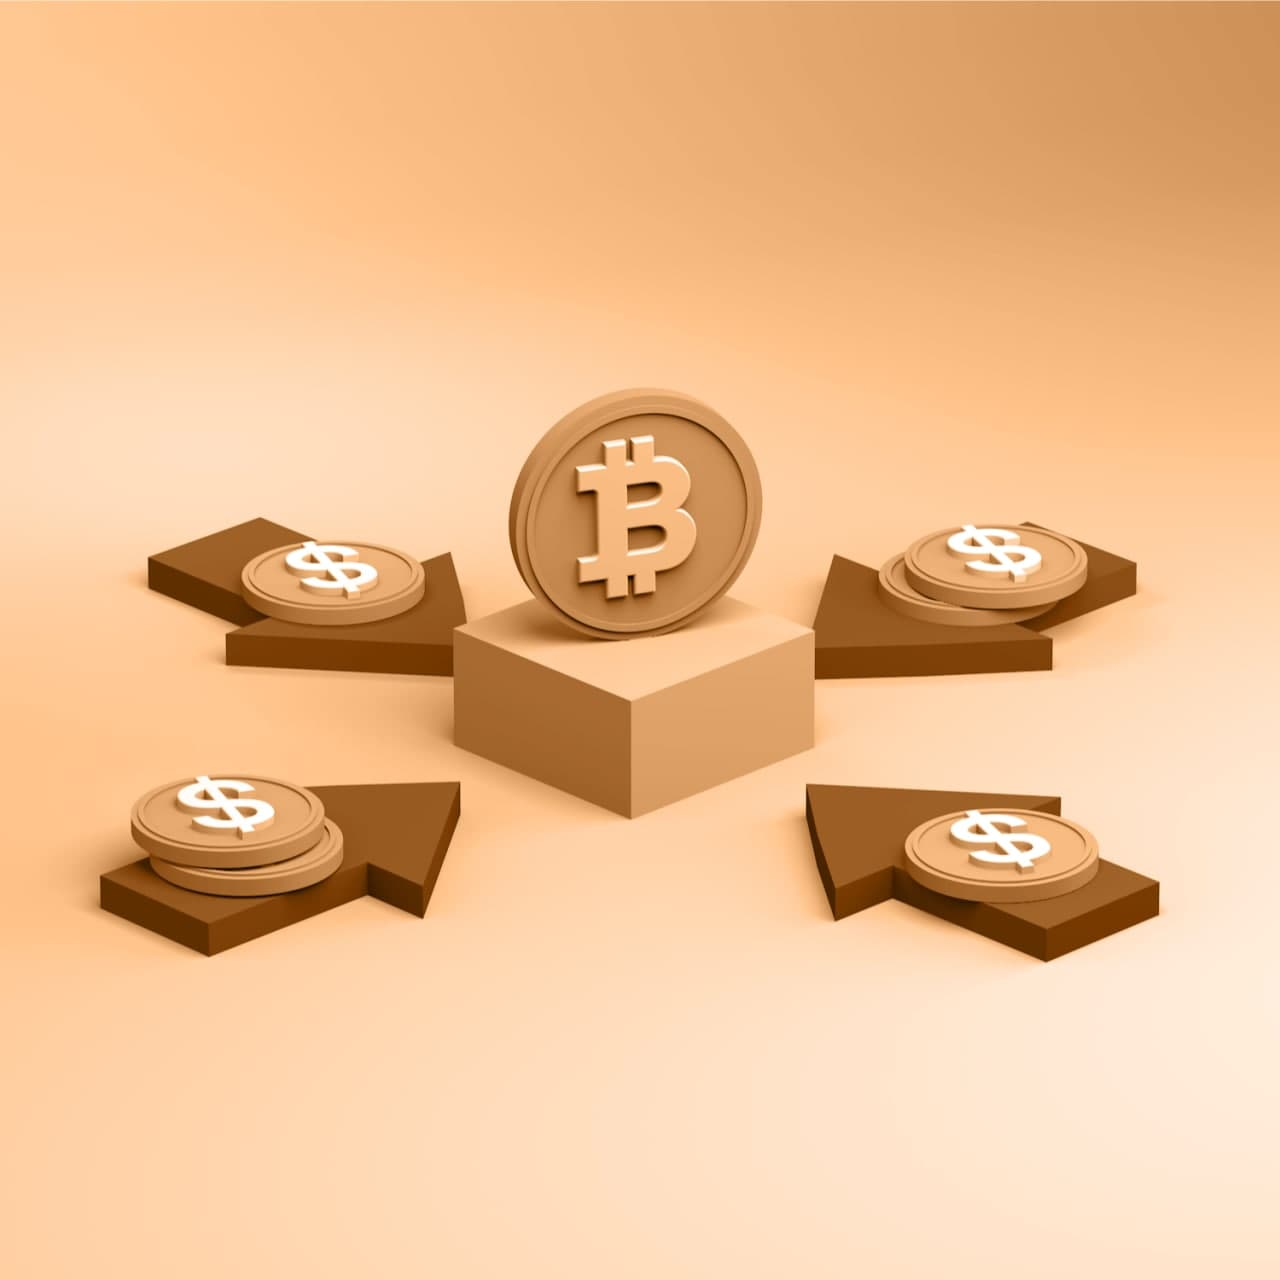 Doing This One Simple Thing Would Have Turned You Into a Bitcoin Millionaire